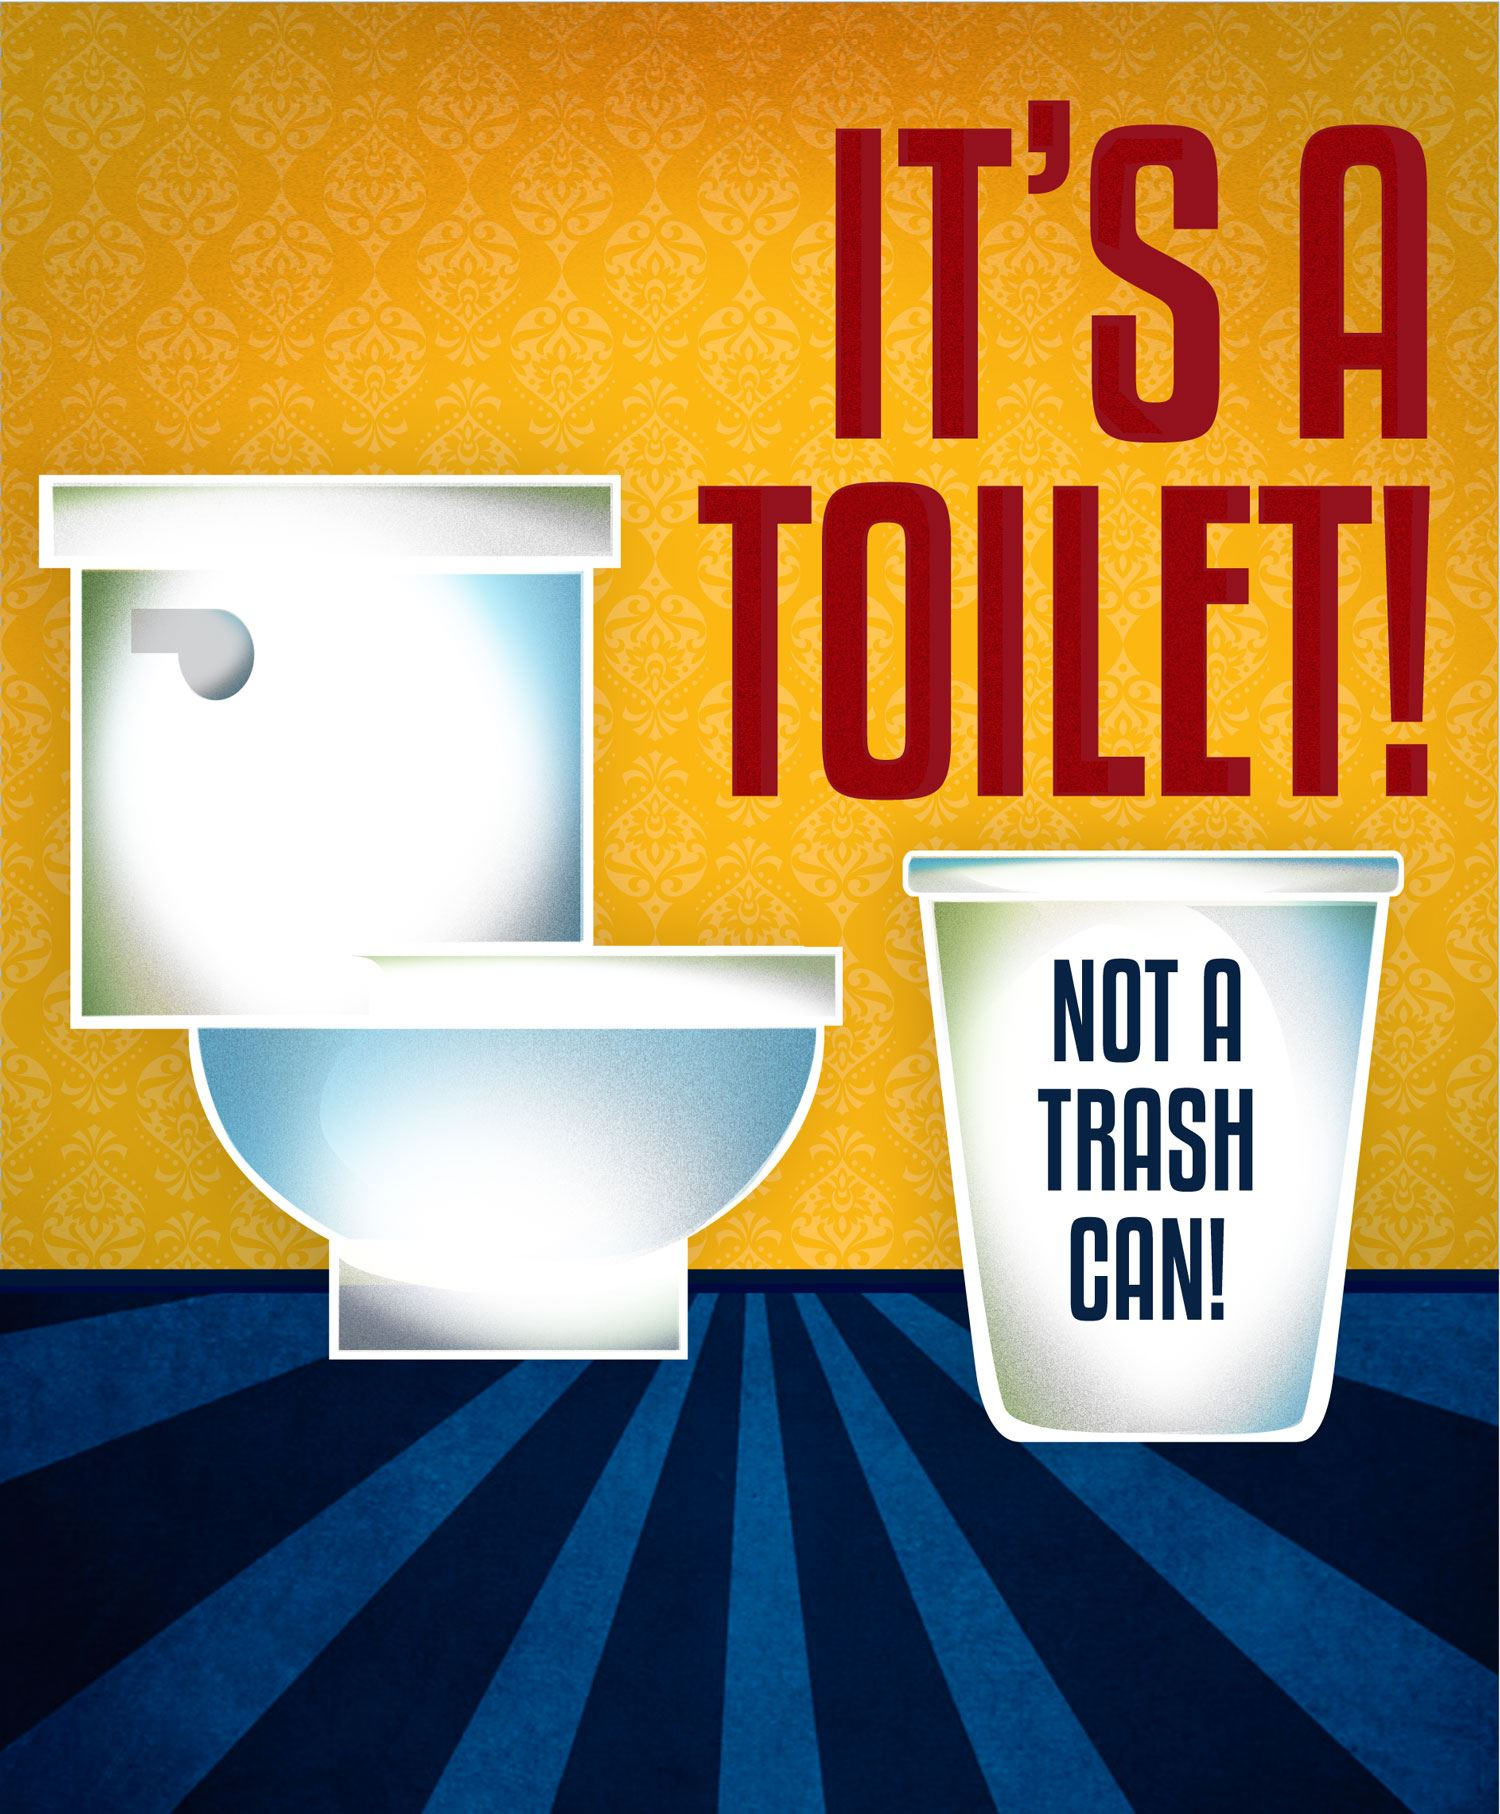 It is a toilet not a trash can